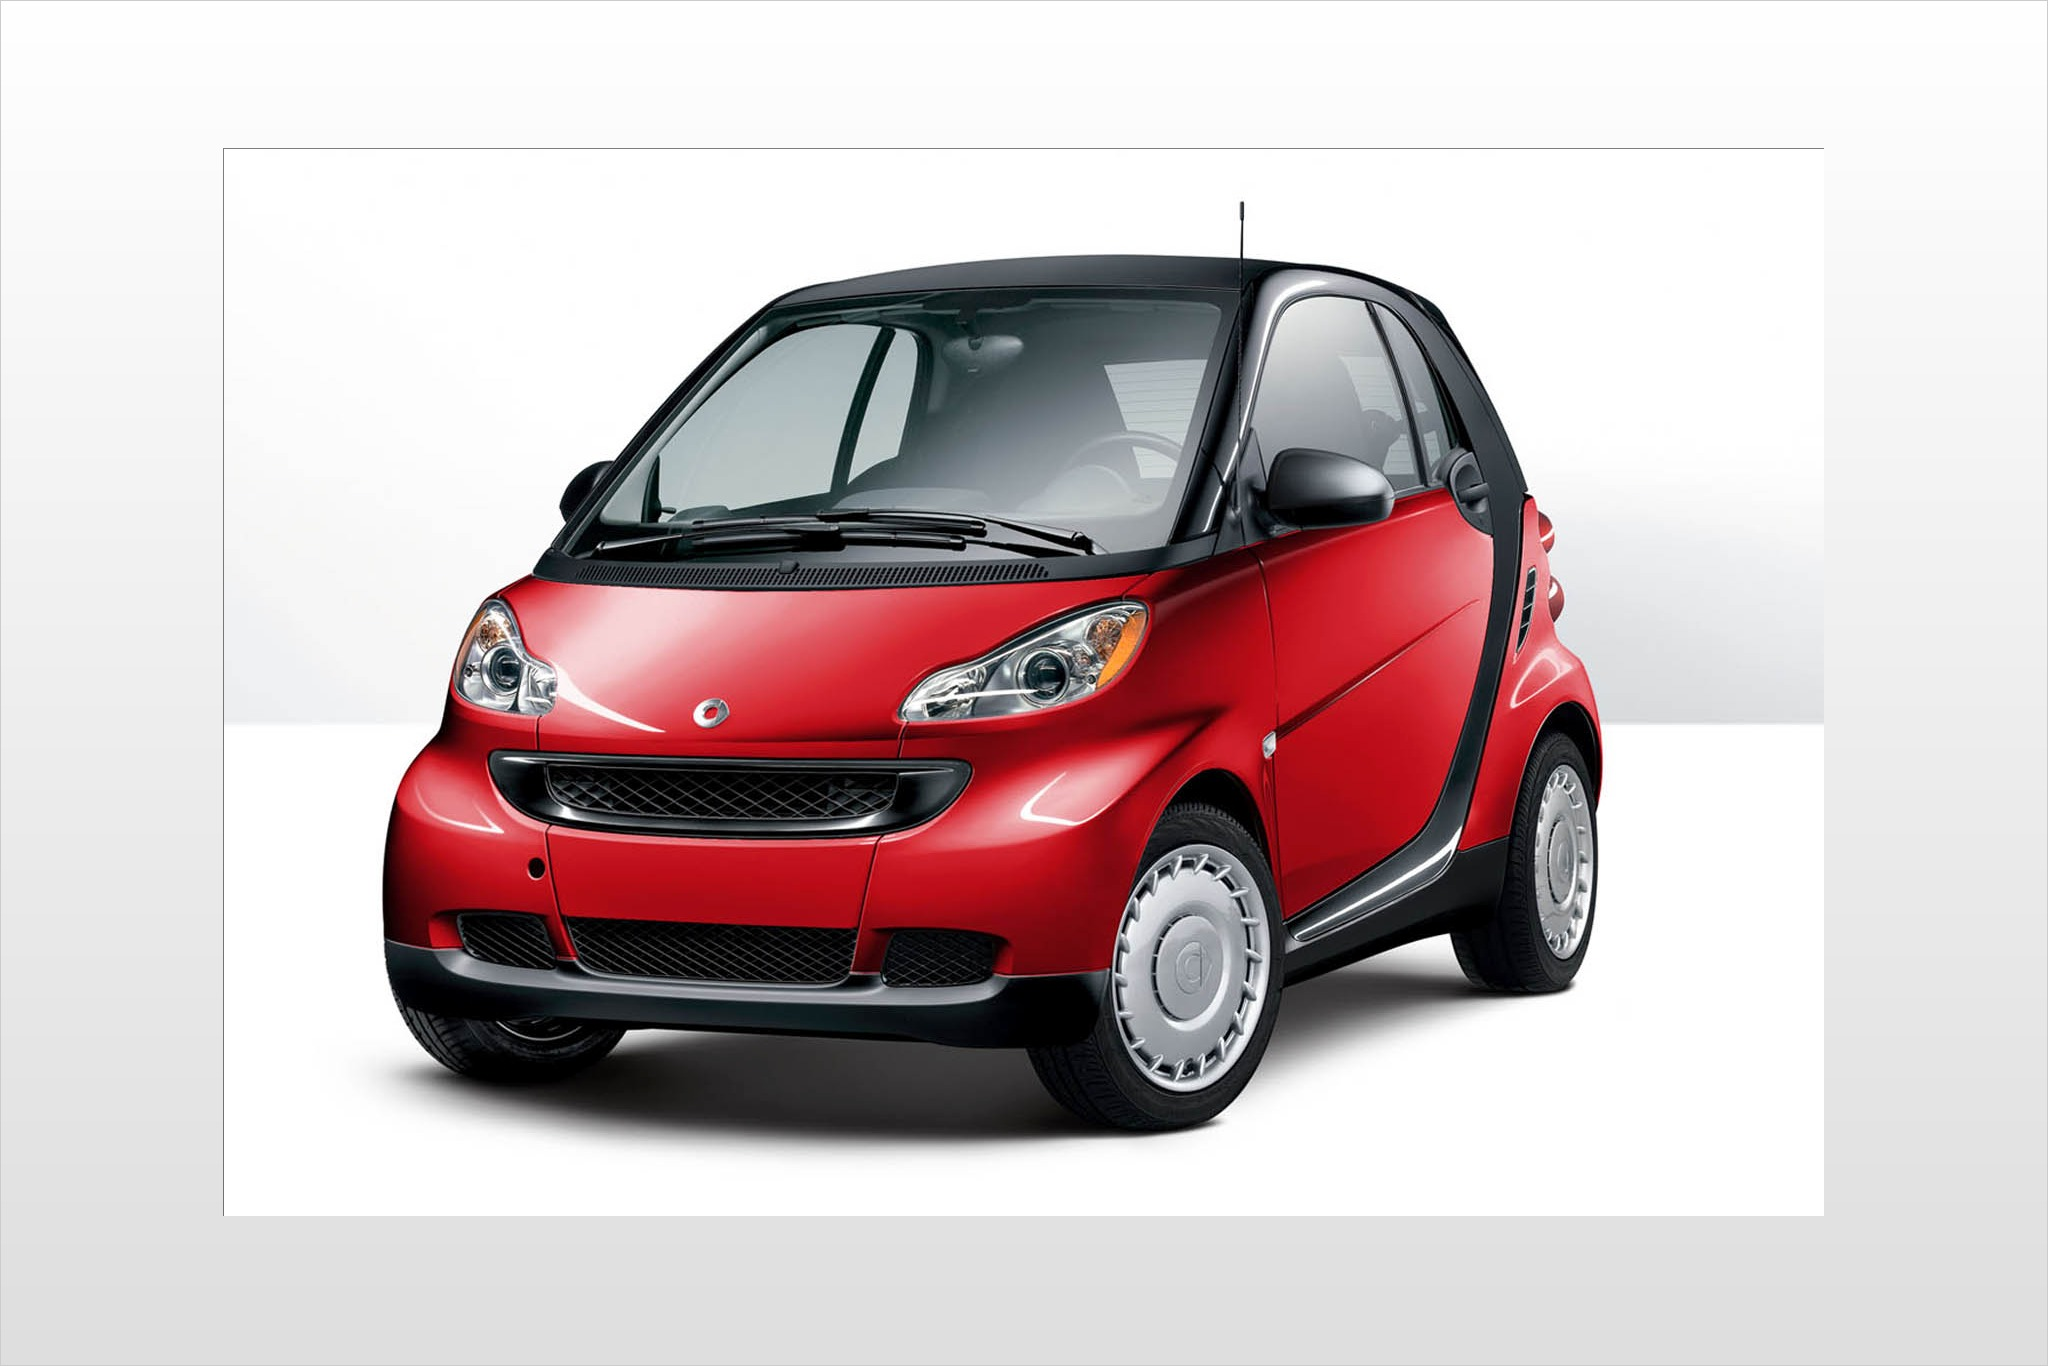 2012 smart fortwo 2dr Hat exterior #9